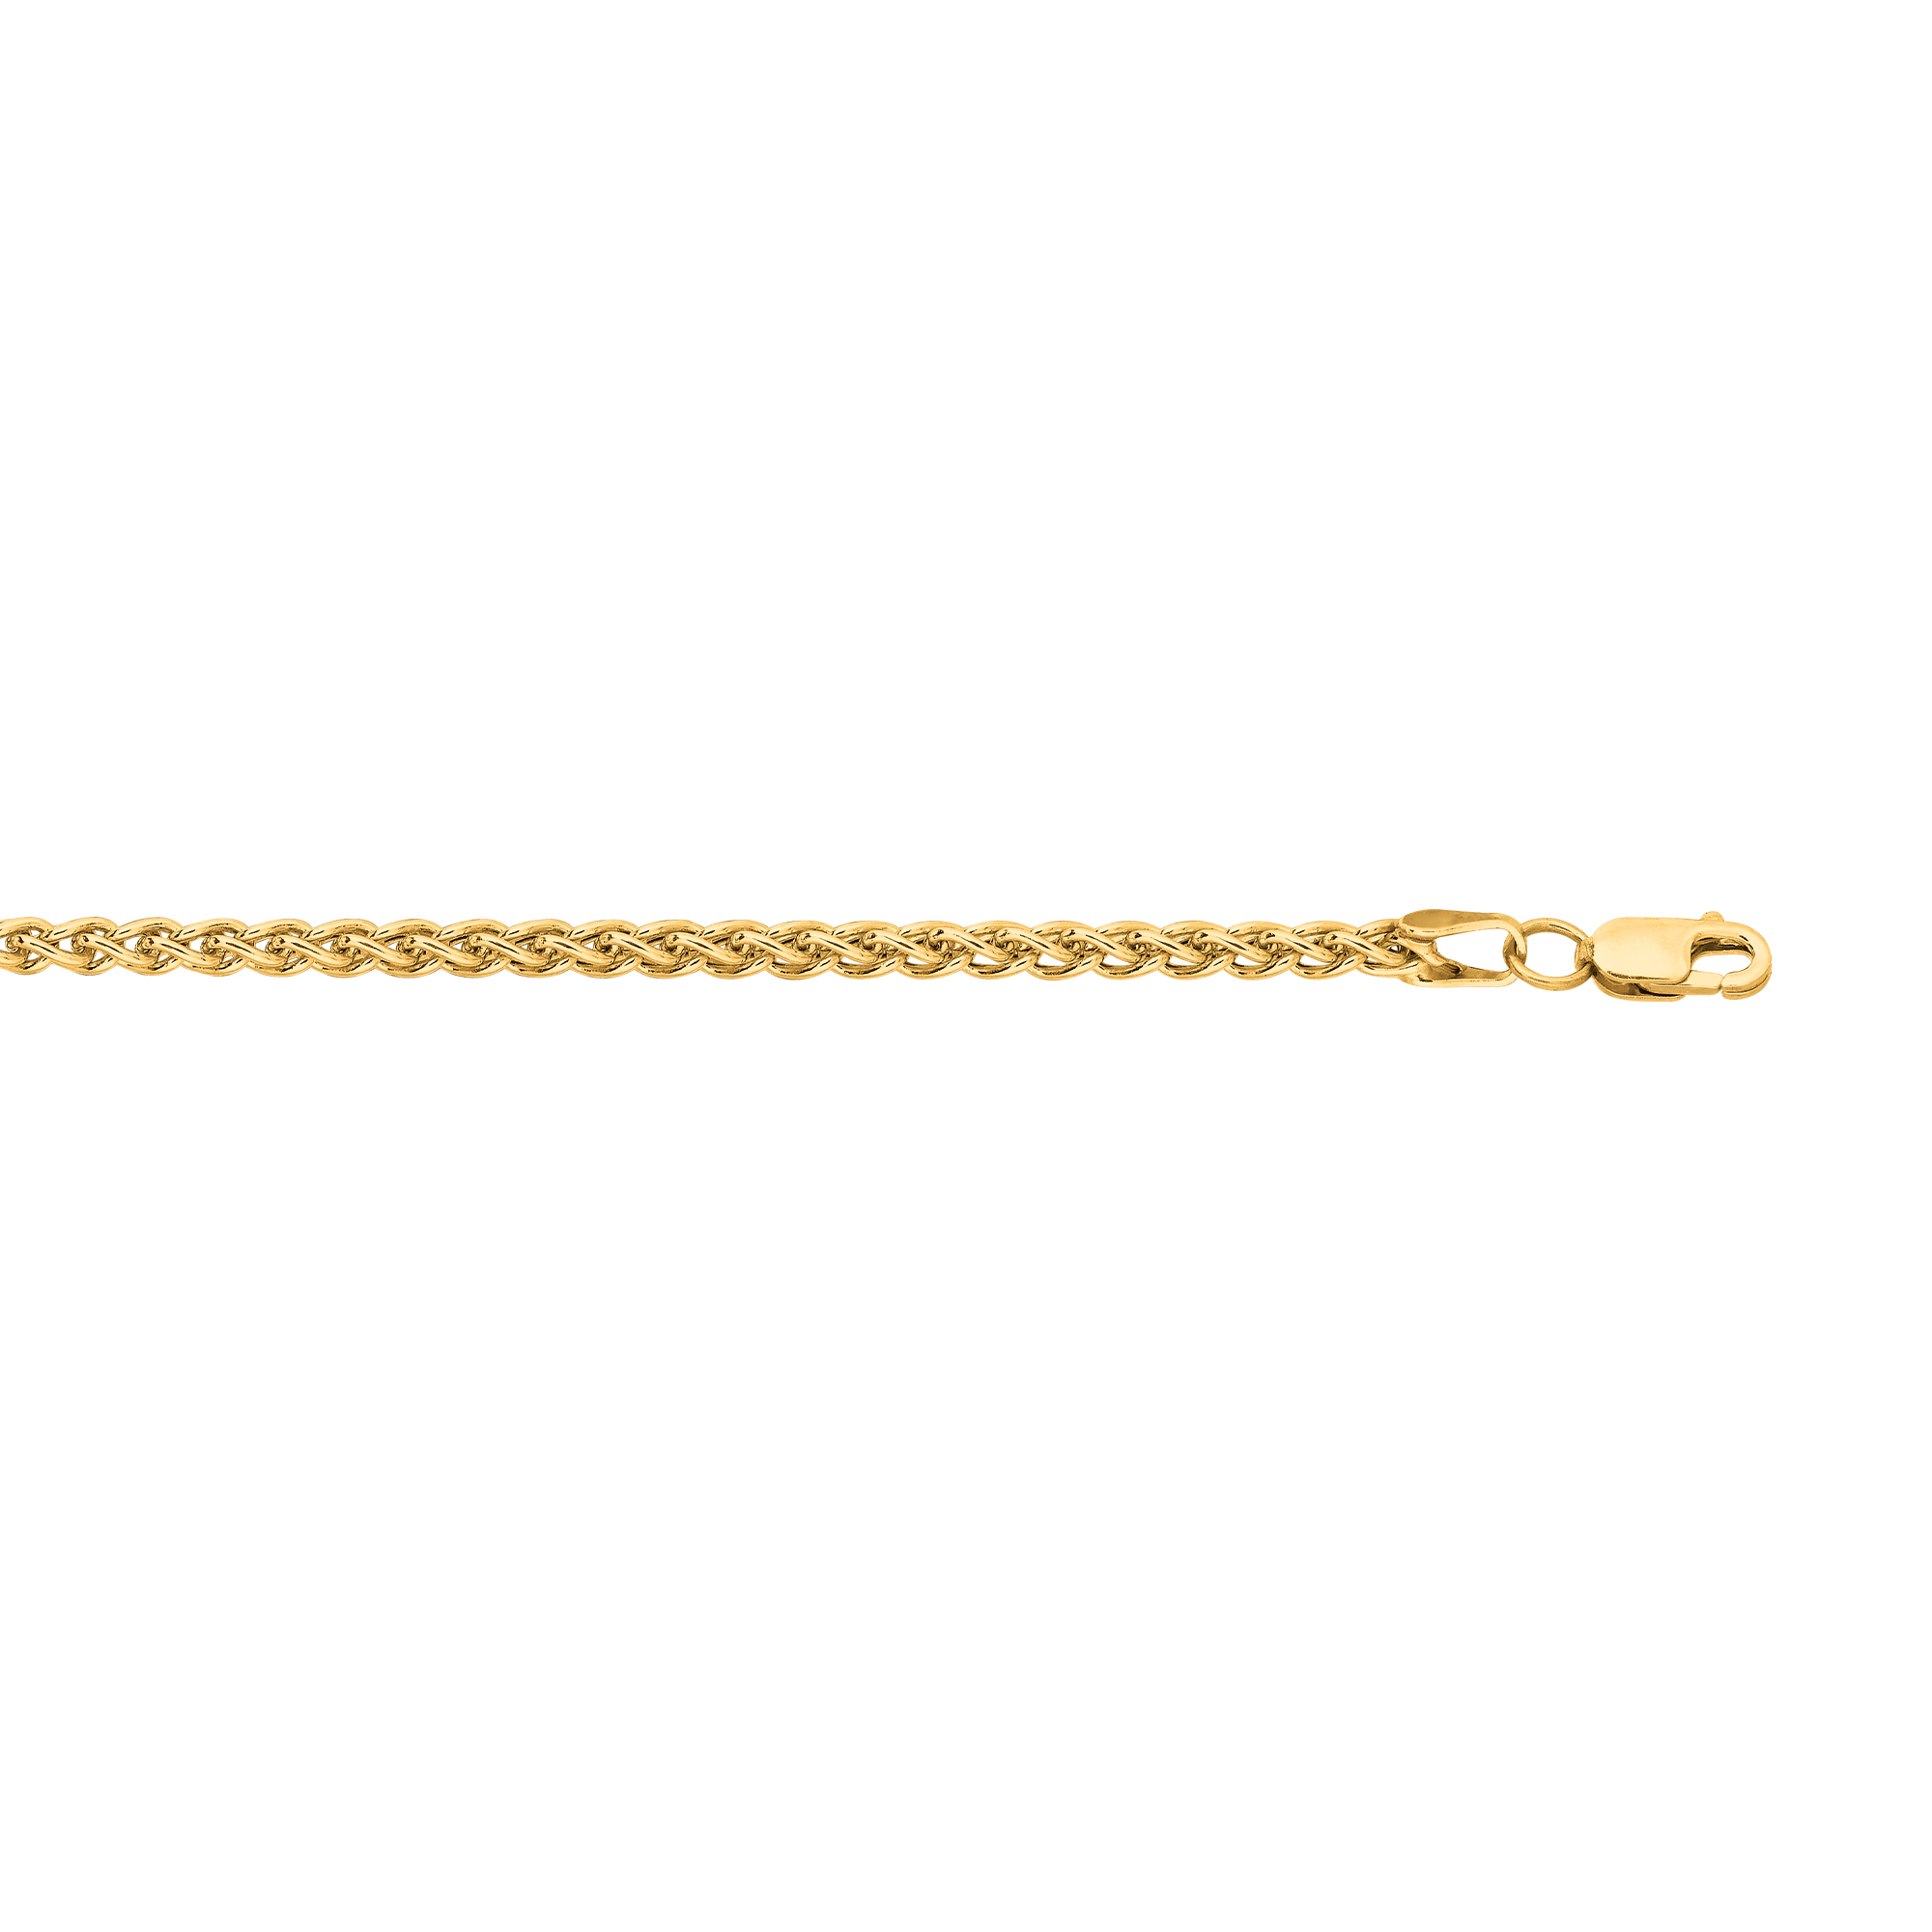 Hollow 14k Gold Wheat Chain For Men & Women 2.8mm Wide